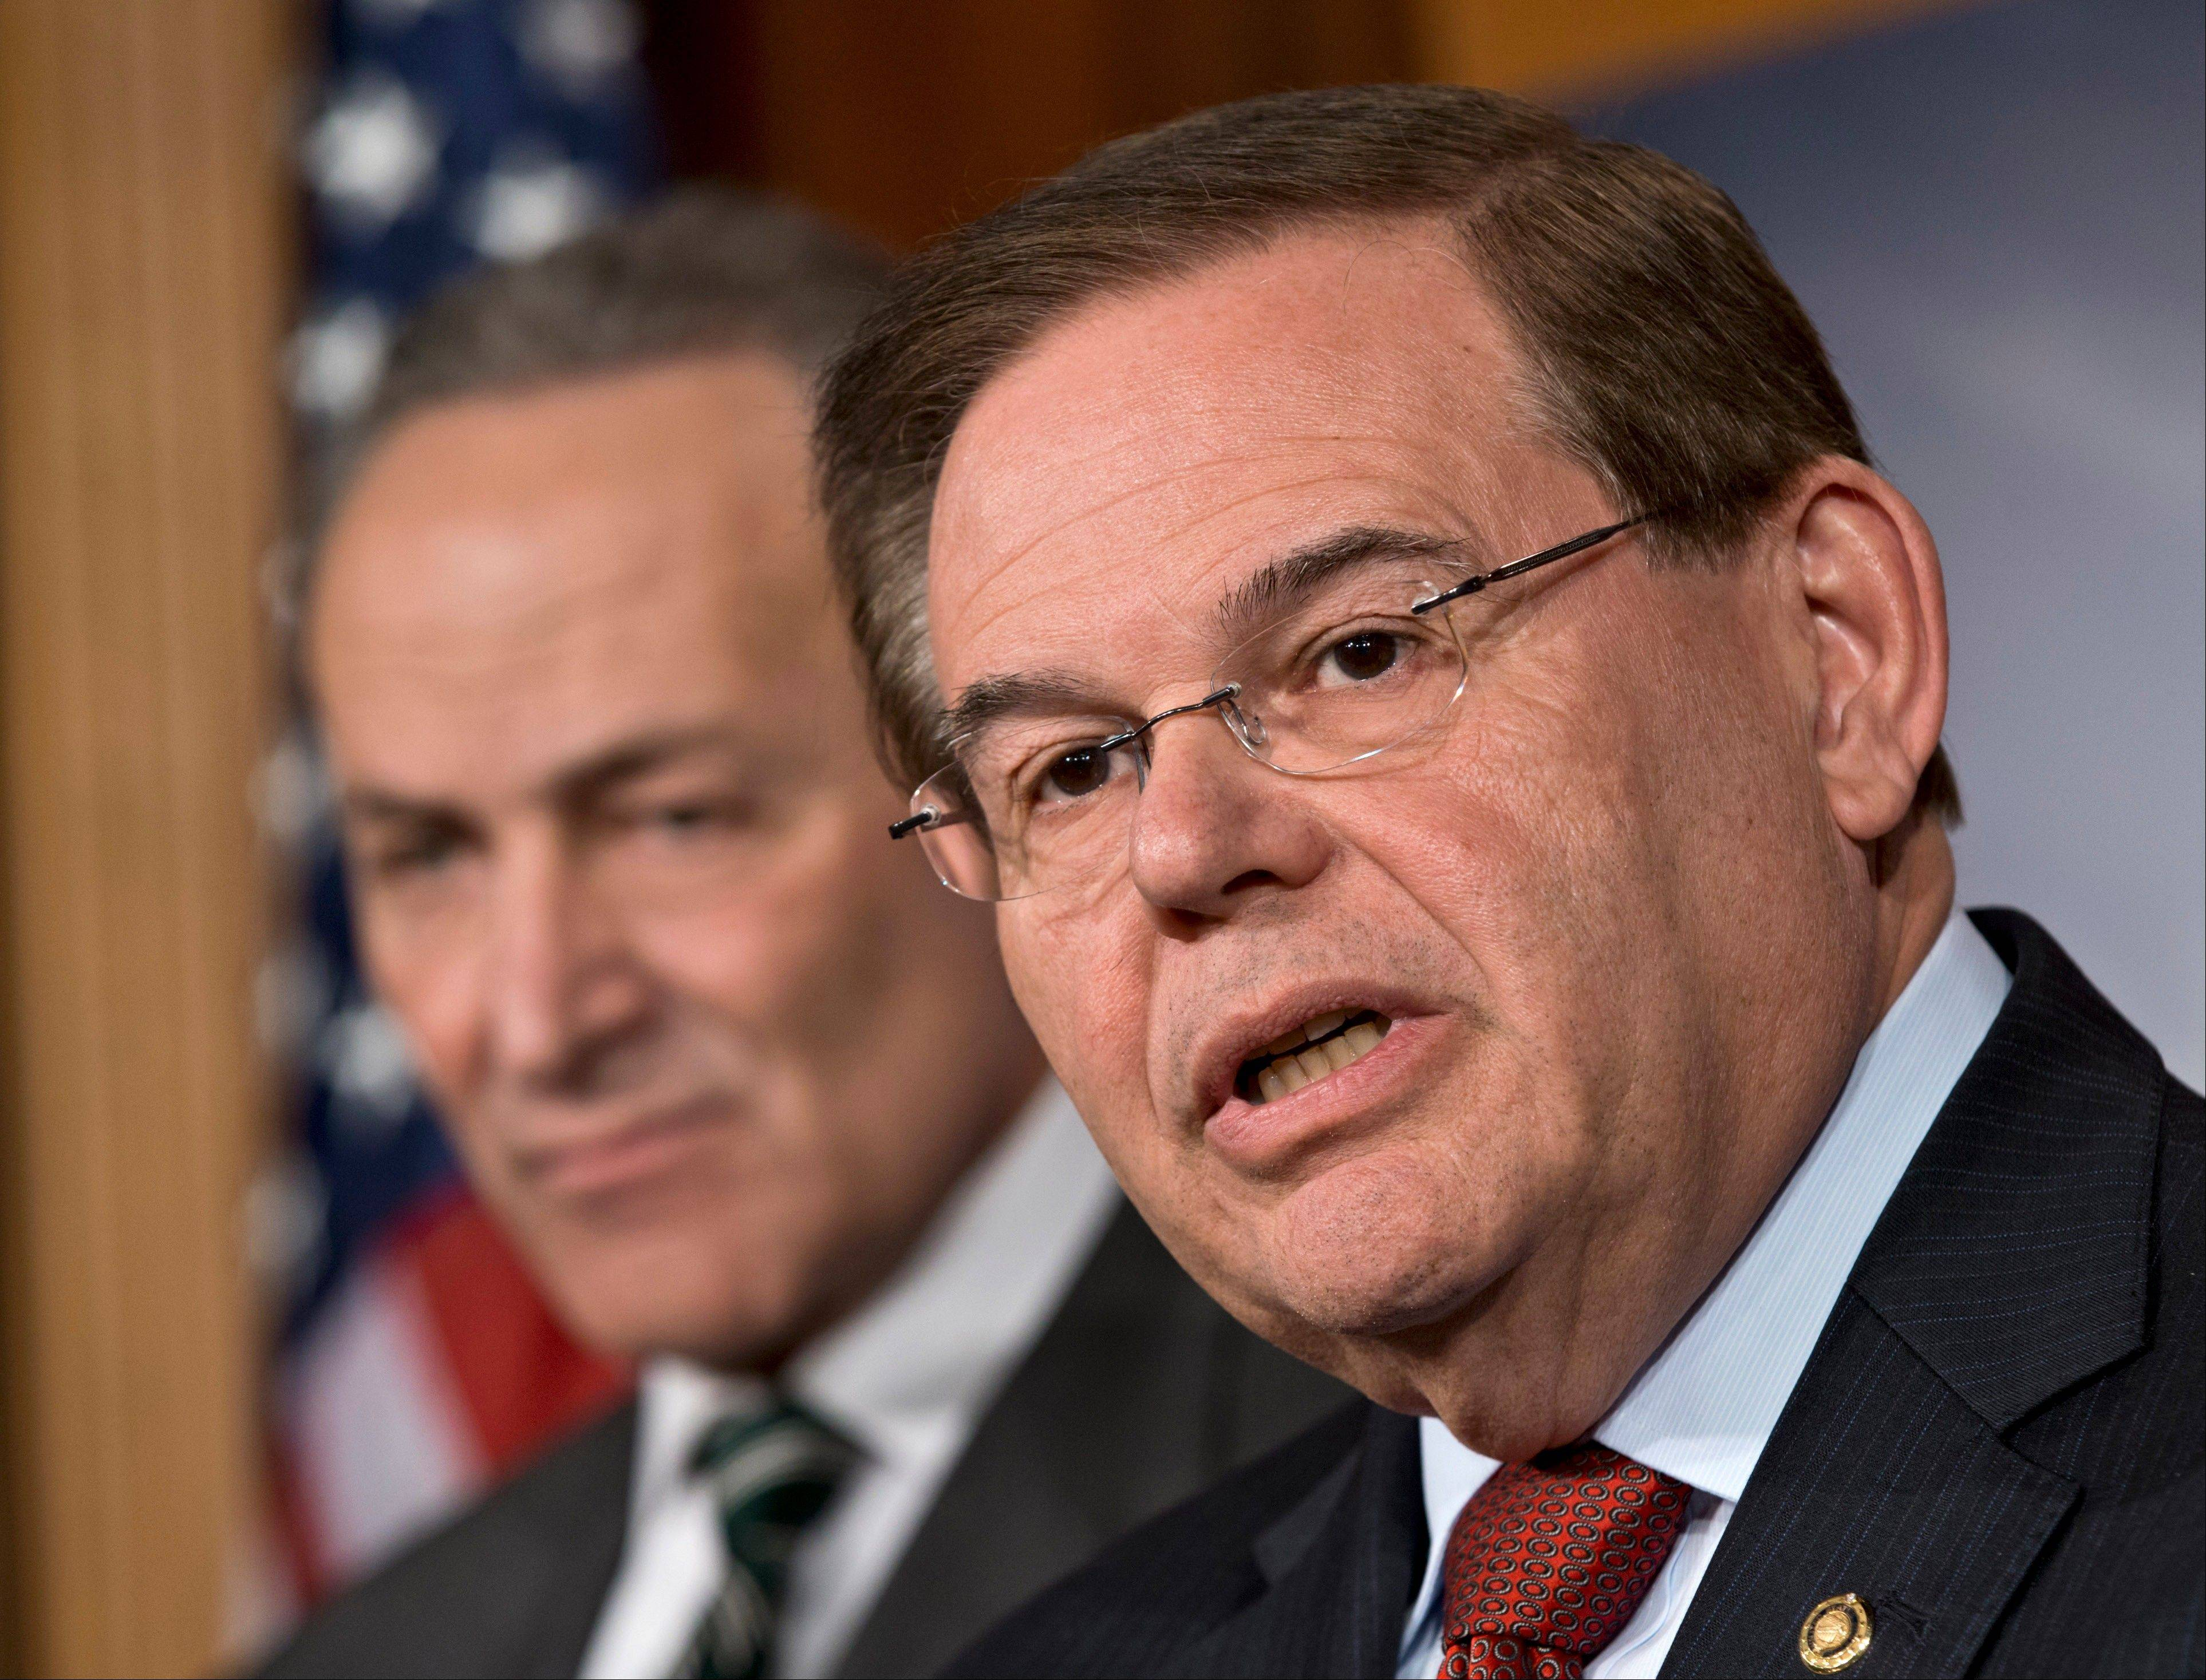 Sen. Robert Menendez, right, acknowledged Wednesday that his office contacted U.S. health agencies in a way that would help the biggest political donor to his re-election, the same eye doctor whose private jet Menendez used for two personal trips to the Dominican Republic.